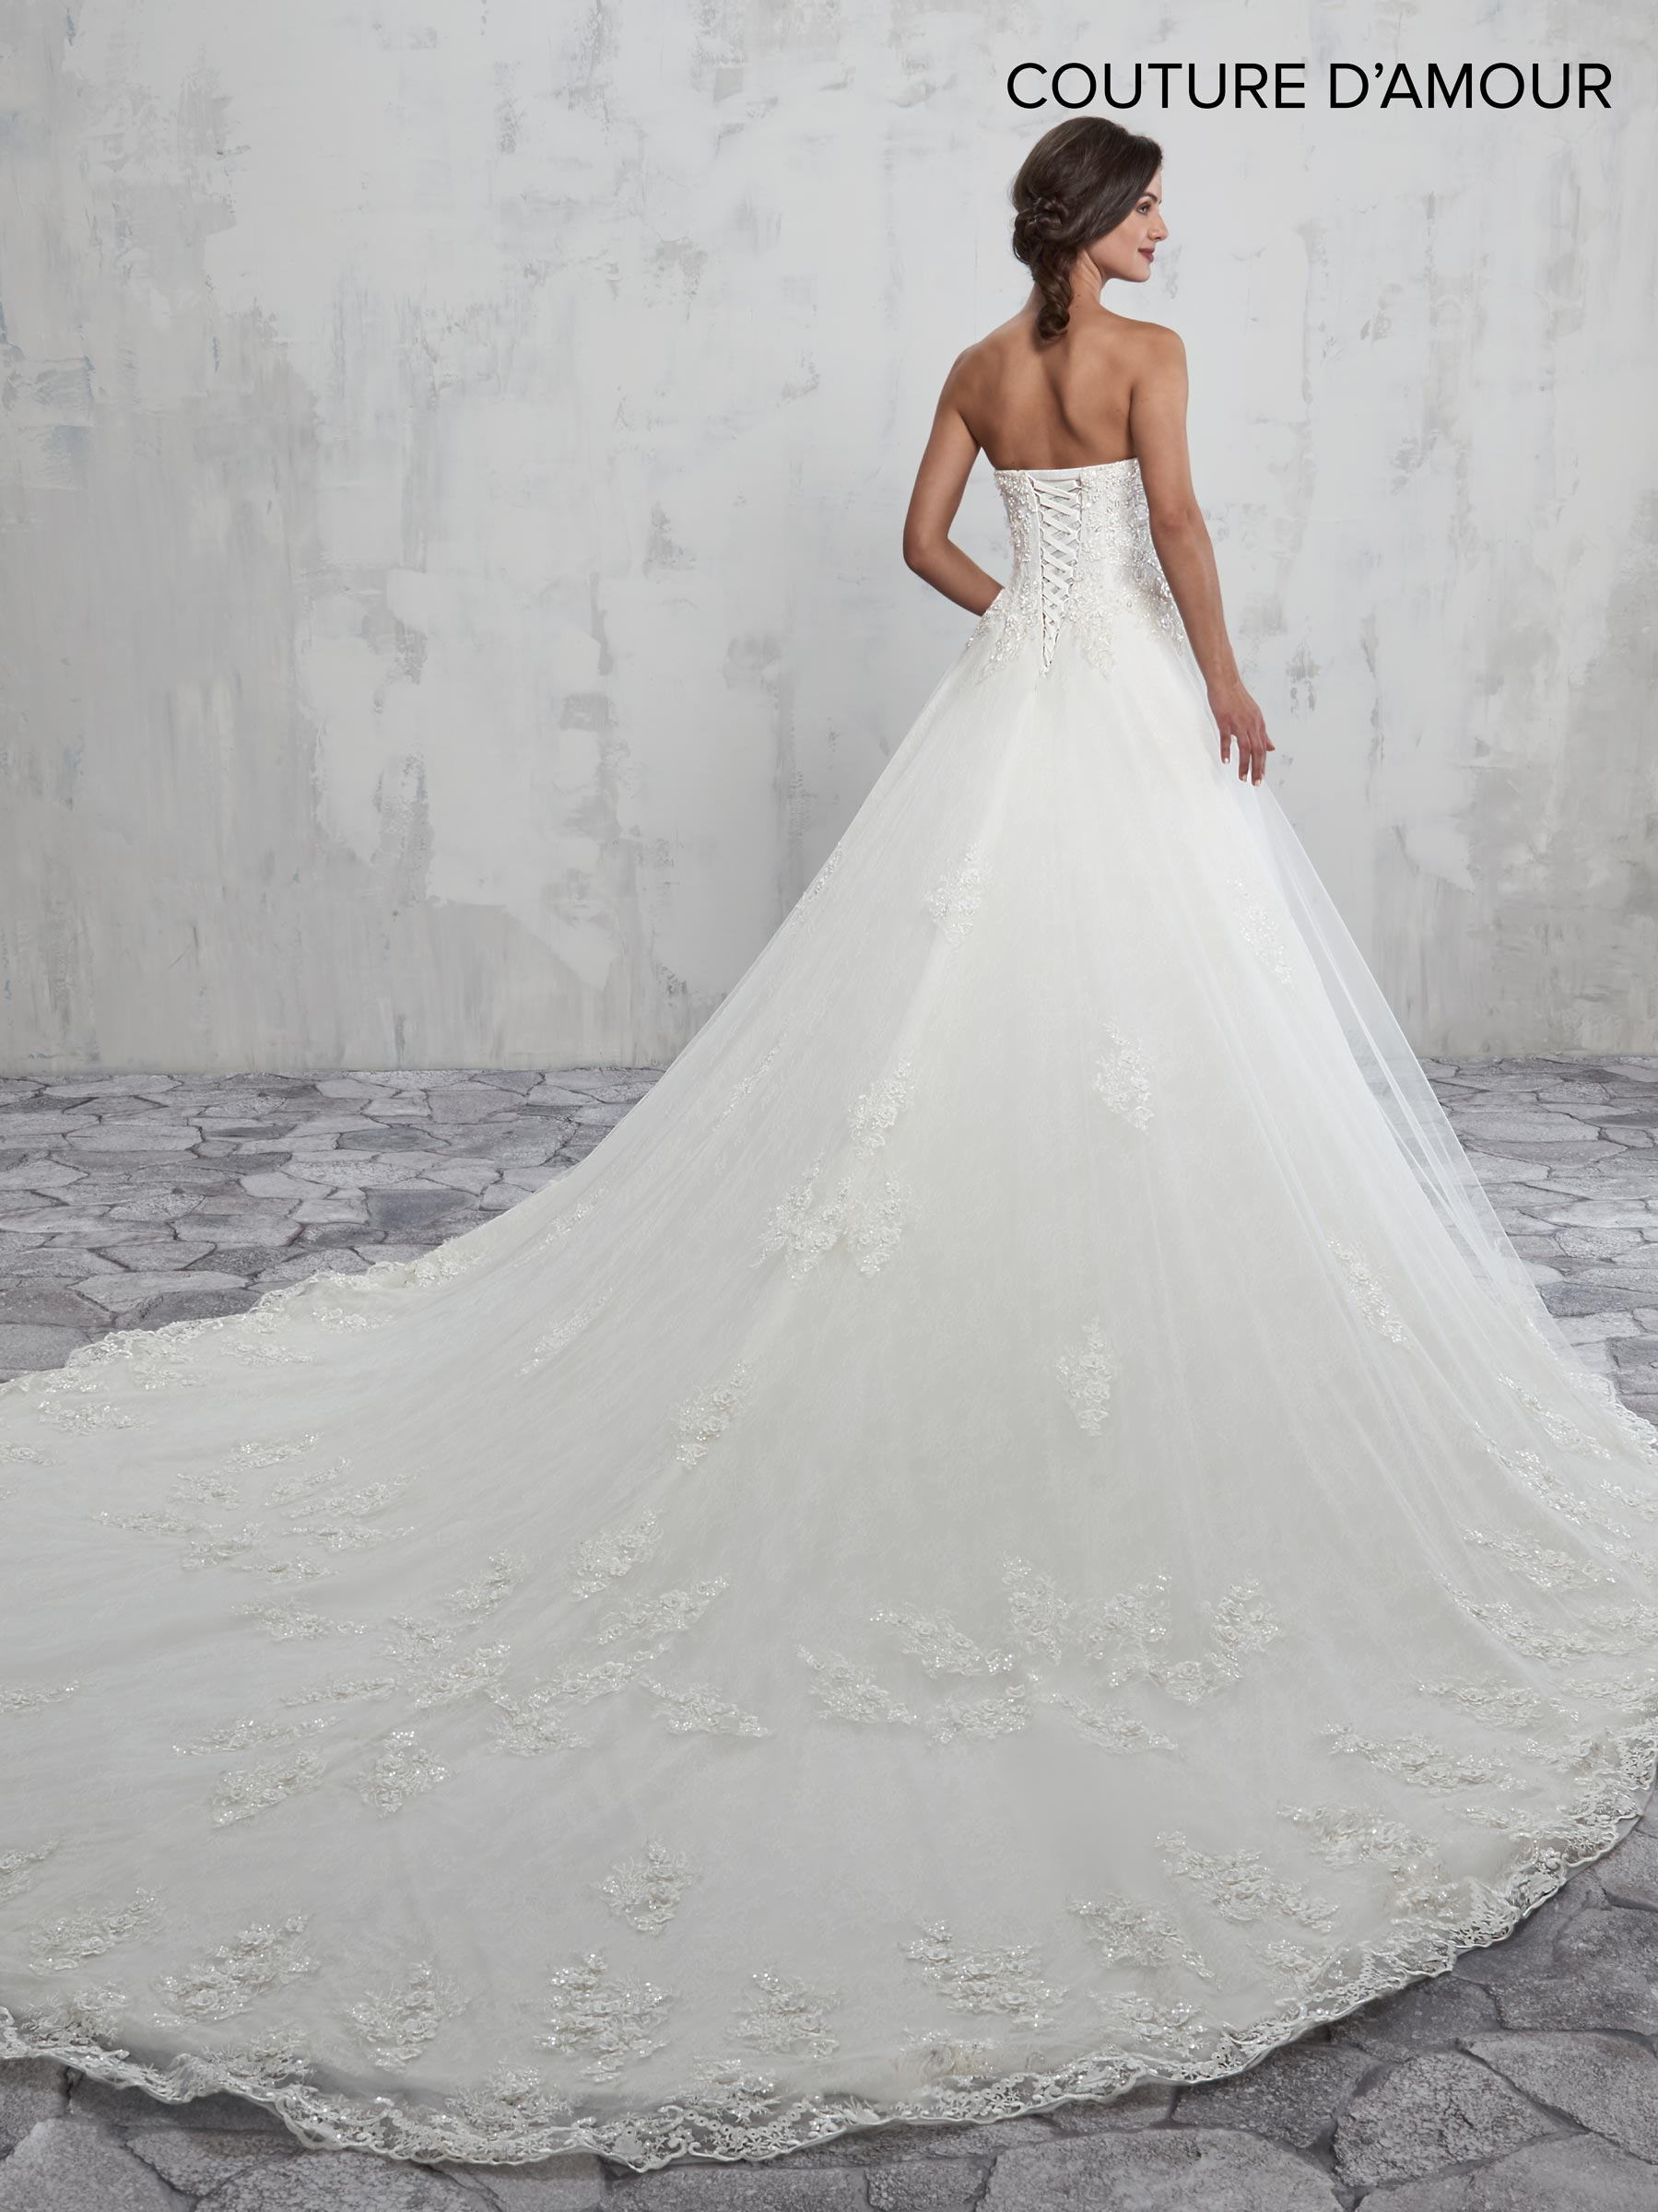 Couture Damour Bridal Dresses | Couture d'Amour | Style - MB4020